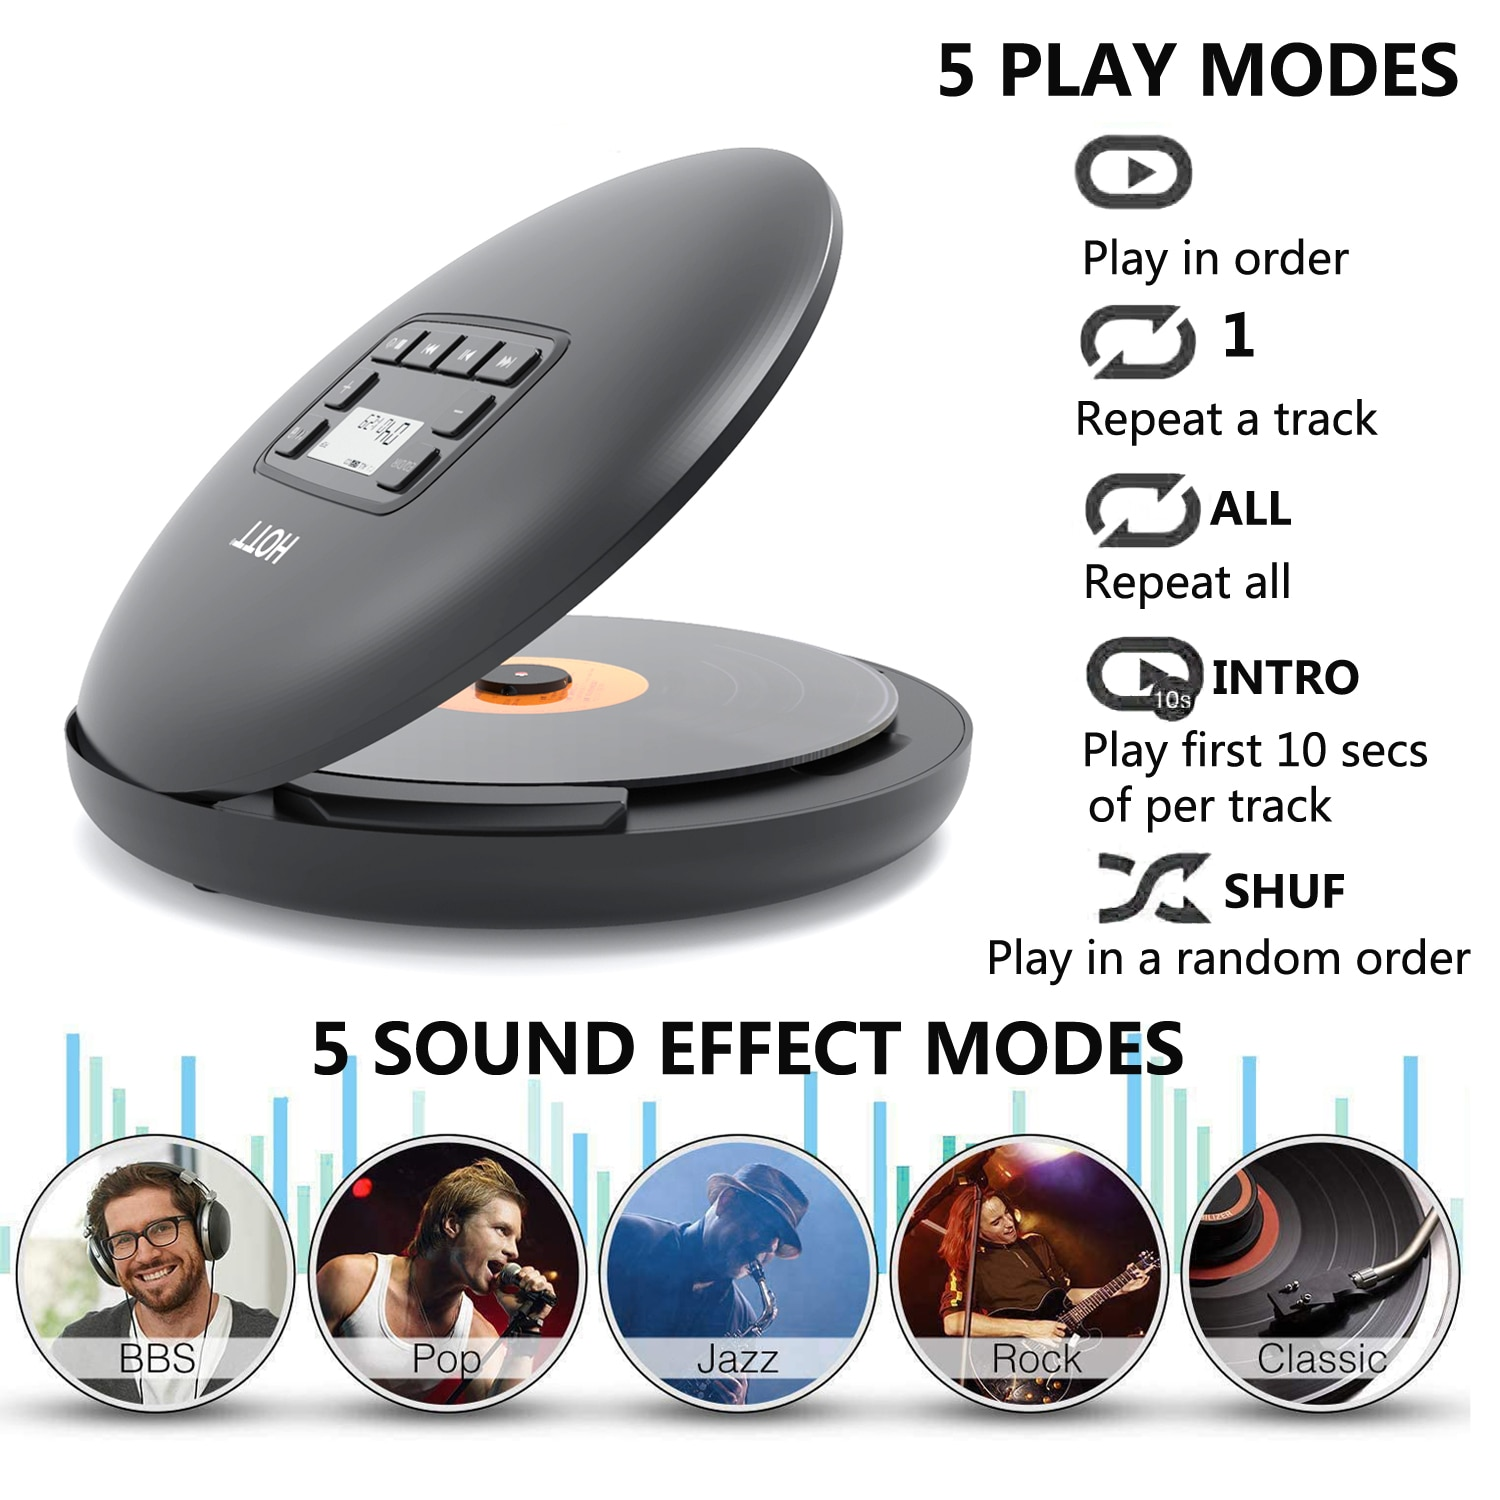 Bluetooth Portable Dynamic CD Player For Family Travel And Car, With Stereo Headset, Shockproof Protection-Black Vogue enlarge